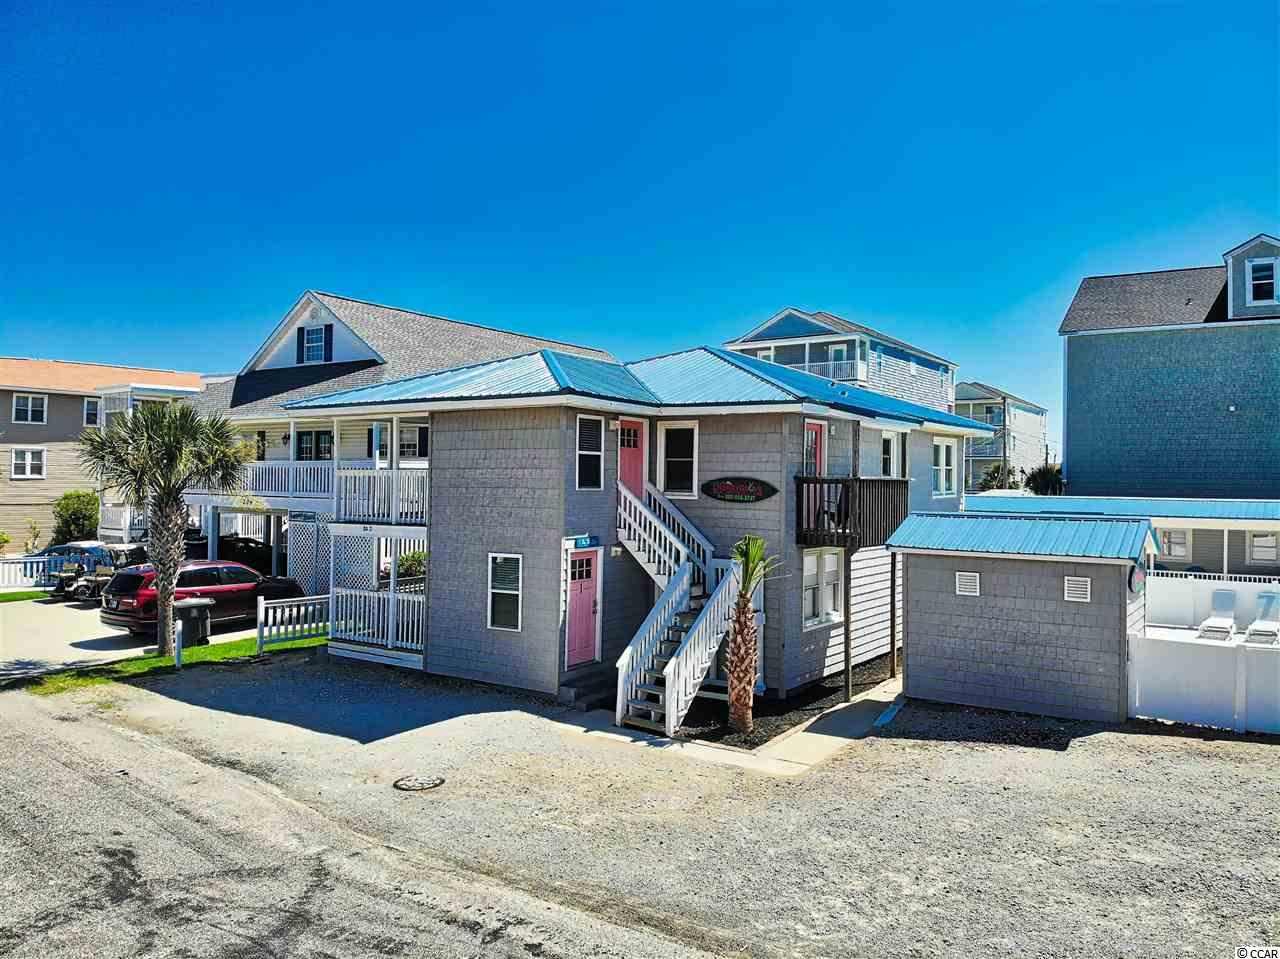 "This home called ""1 By The Sea "" is directly across the street from the Ocean on a Corner lot, has an in-ground pool out front. This is a 7 bedroom, 6 bath 2 story home with spiral staircase that will accommodate approximately 26 people. New Kitchen, New Living Room Furnishings, Paint, Landscape, Has Metal Roof, Ready to rent or Excellent 2nd Home. SQUARE FOOTAGE IS APPROXIMATE AND NOT GUARANTEED. BUYER IS RESPONSIBLE FOR VERIFICATION."